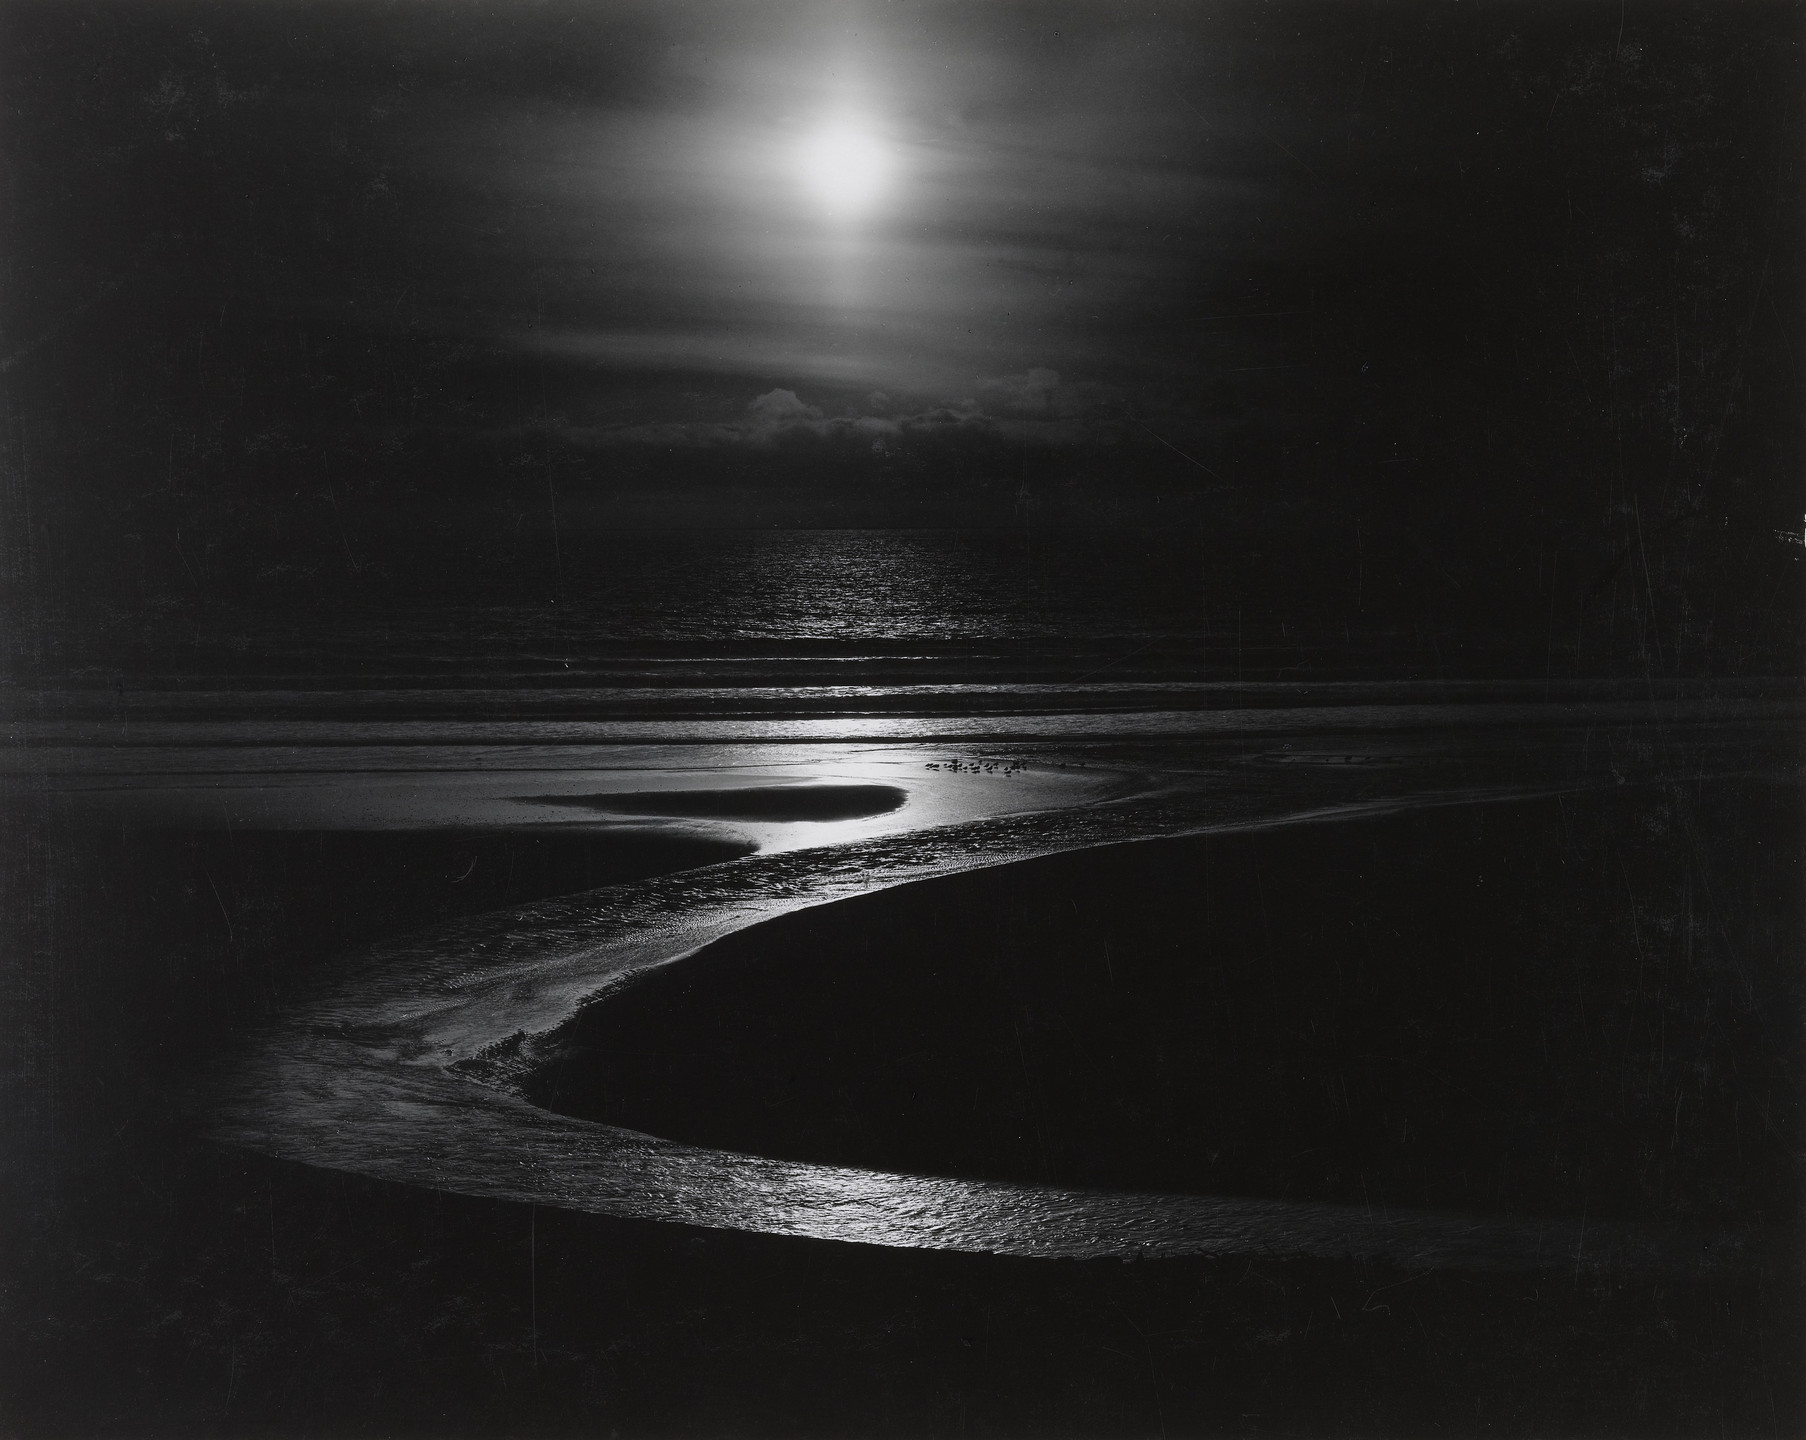 Wynn Bullock. Let There Be Light. 1954